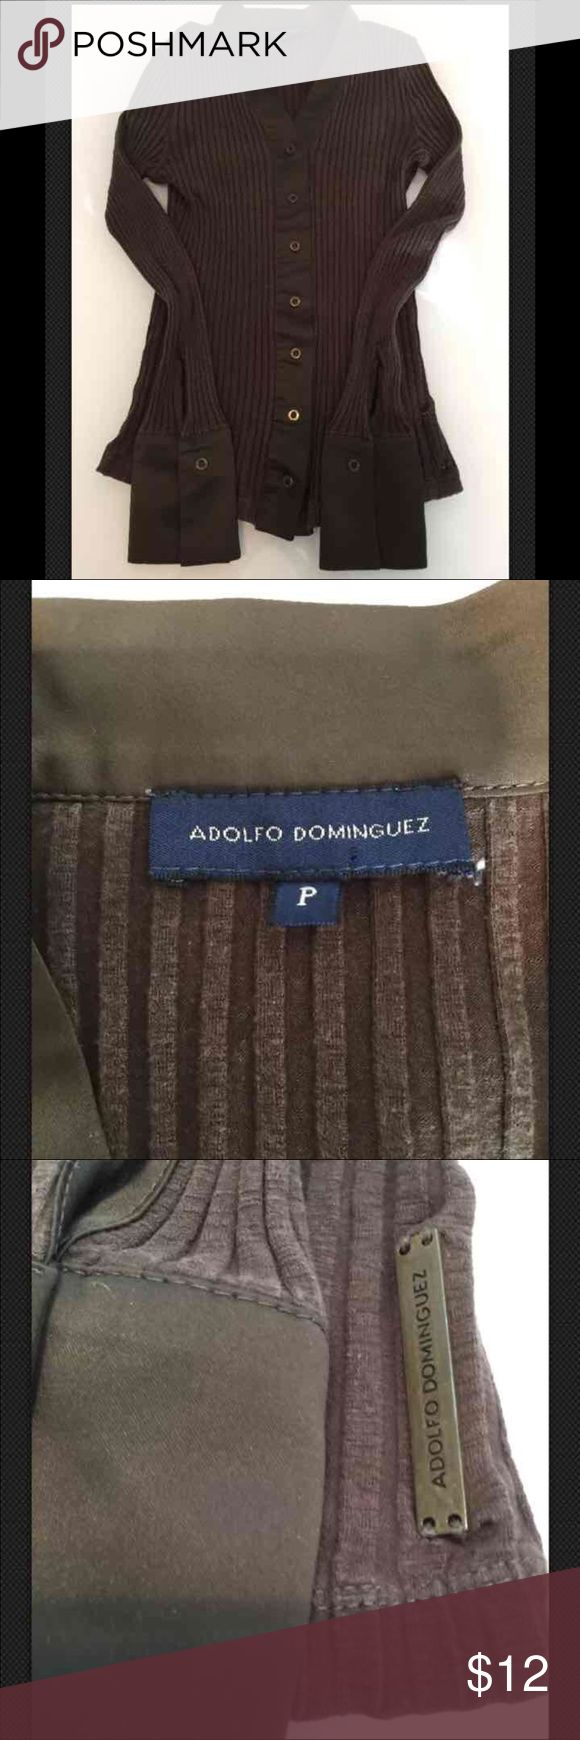 CLEARANCE Adolfo Dominguez Snap Button Top Sz P Adolfo Dominguez Khaki/Brown Ribbed Snap Button Top Sz P Good condition Adolfo Dominguez Tops Button Down Shirts